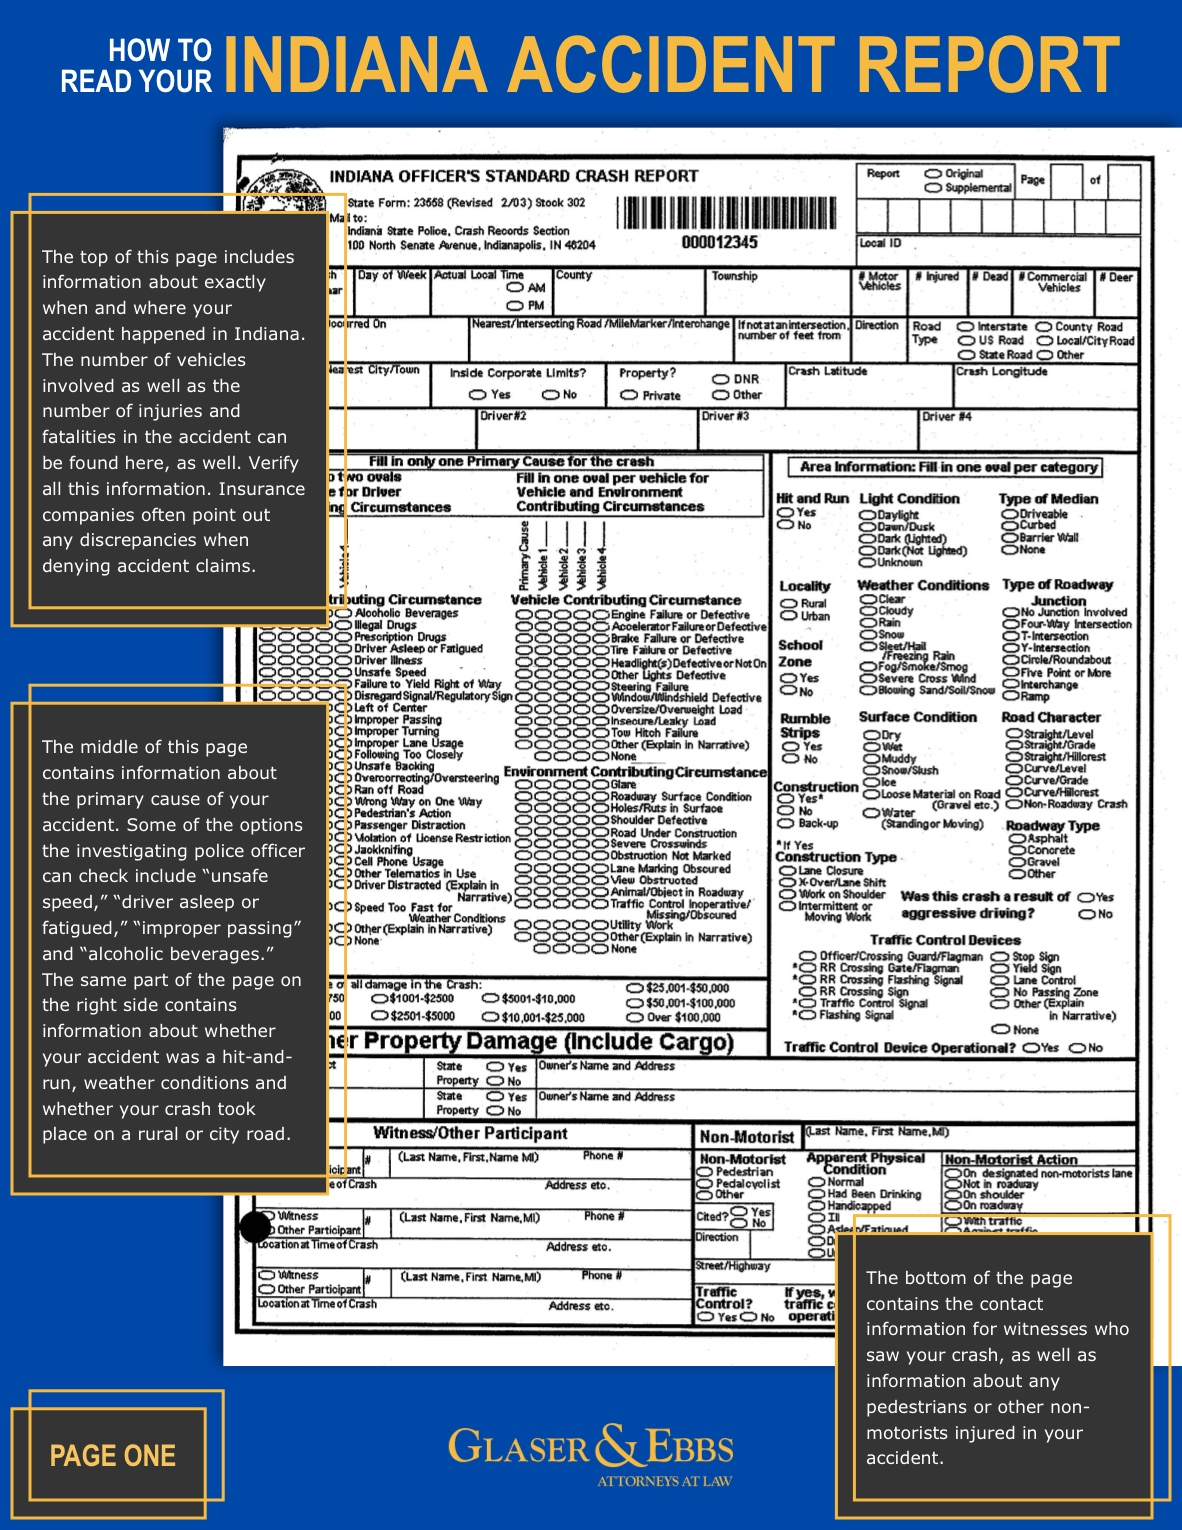 How to Read Your Accident Report pg. 1